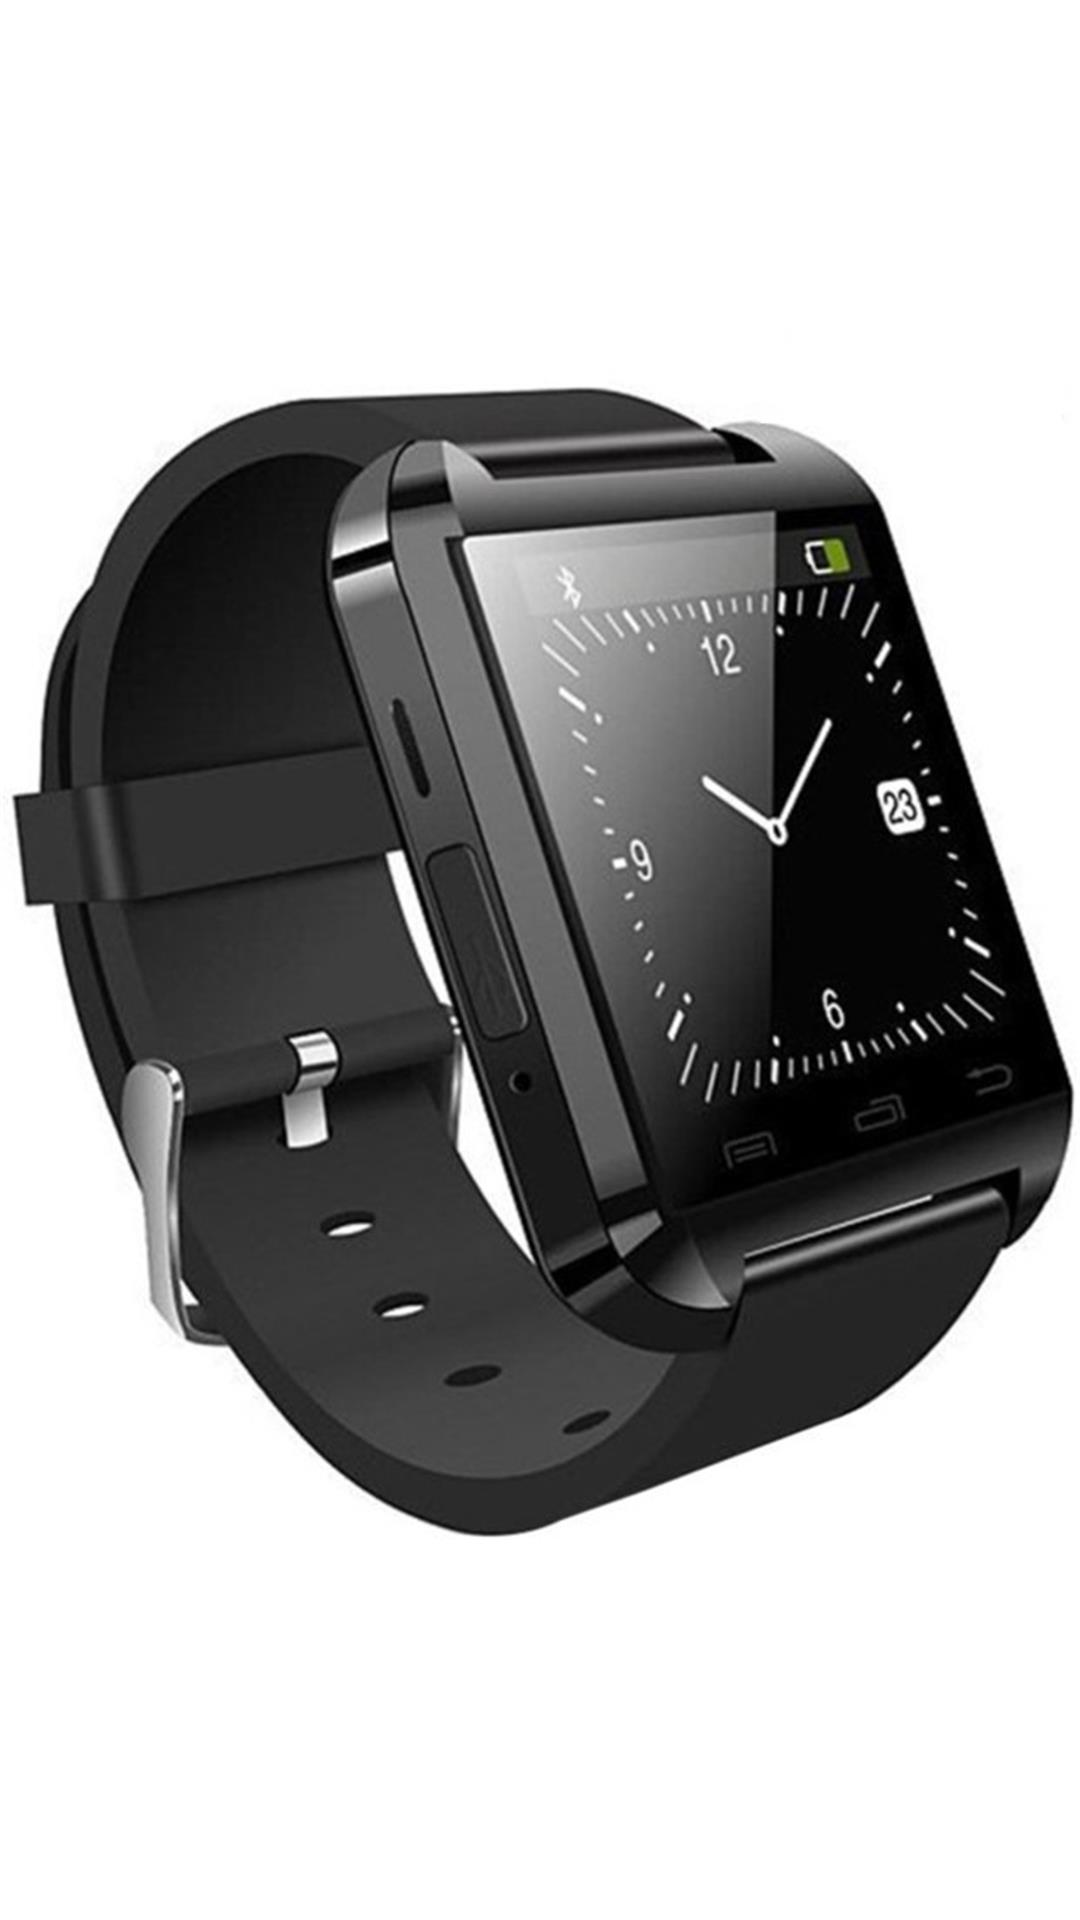 Bluetick Black U8 Smart watch with Free Stylish Selfie Stick